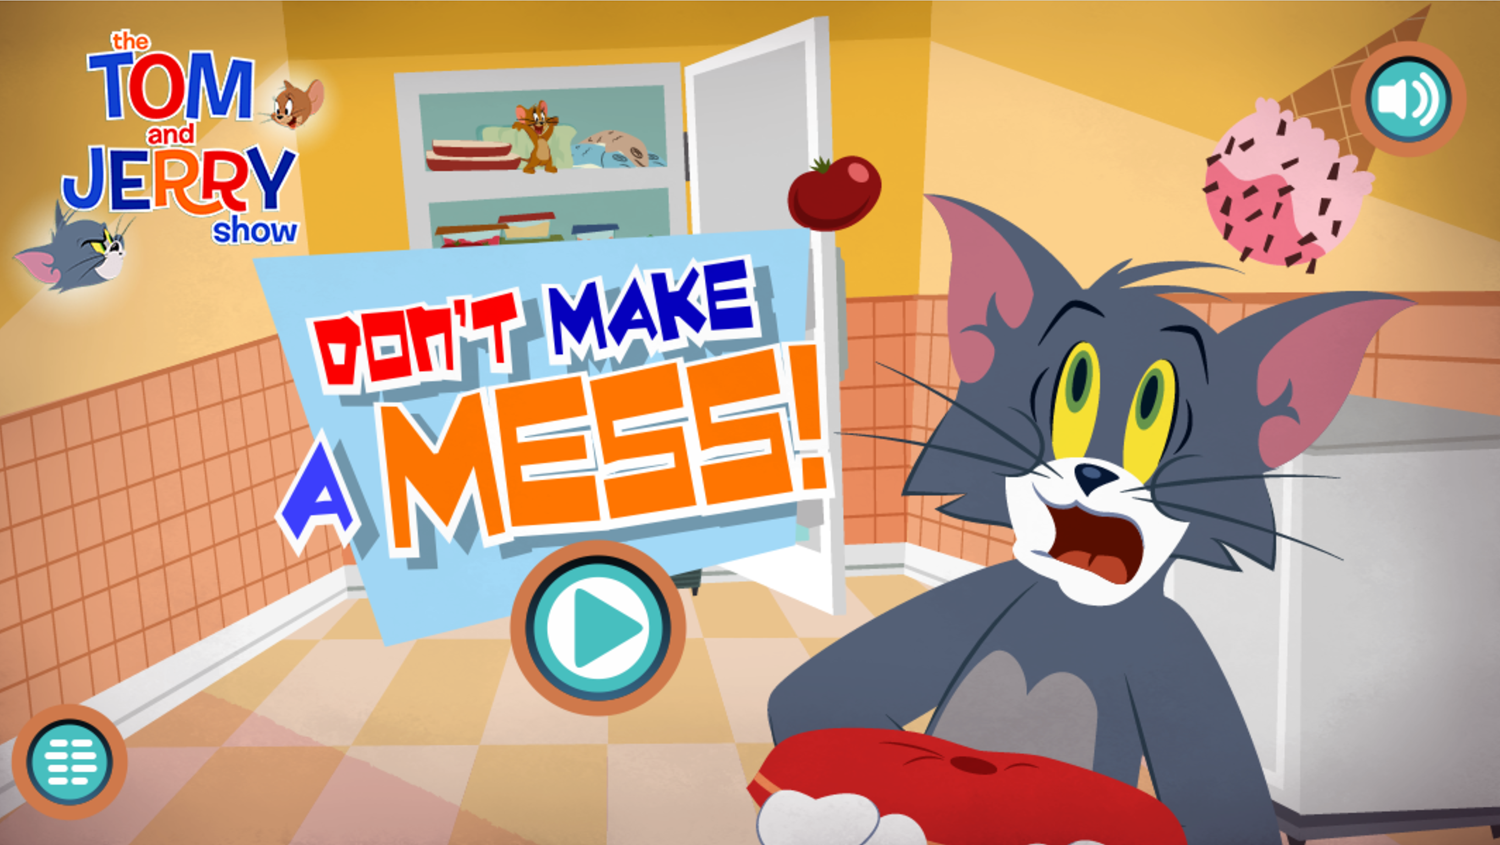 Tom and Jerry Don't Make a Mess Welcome Screen Screenshot.